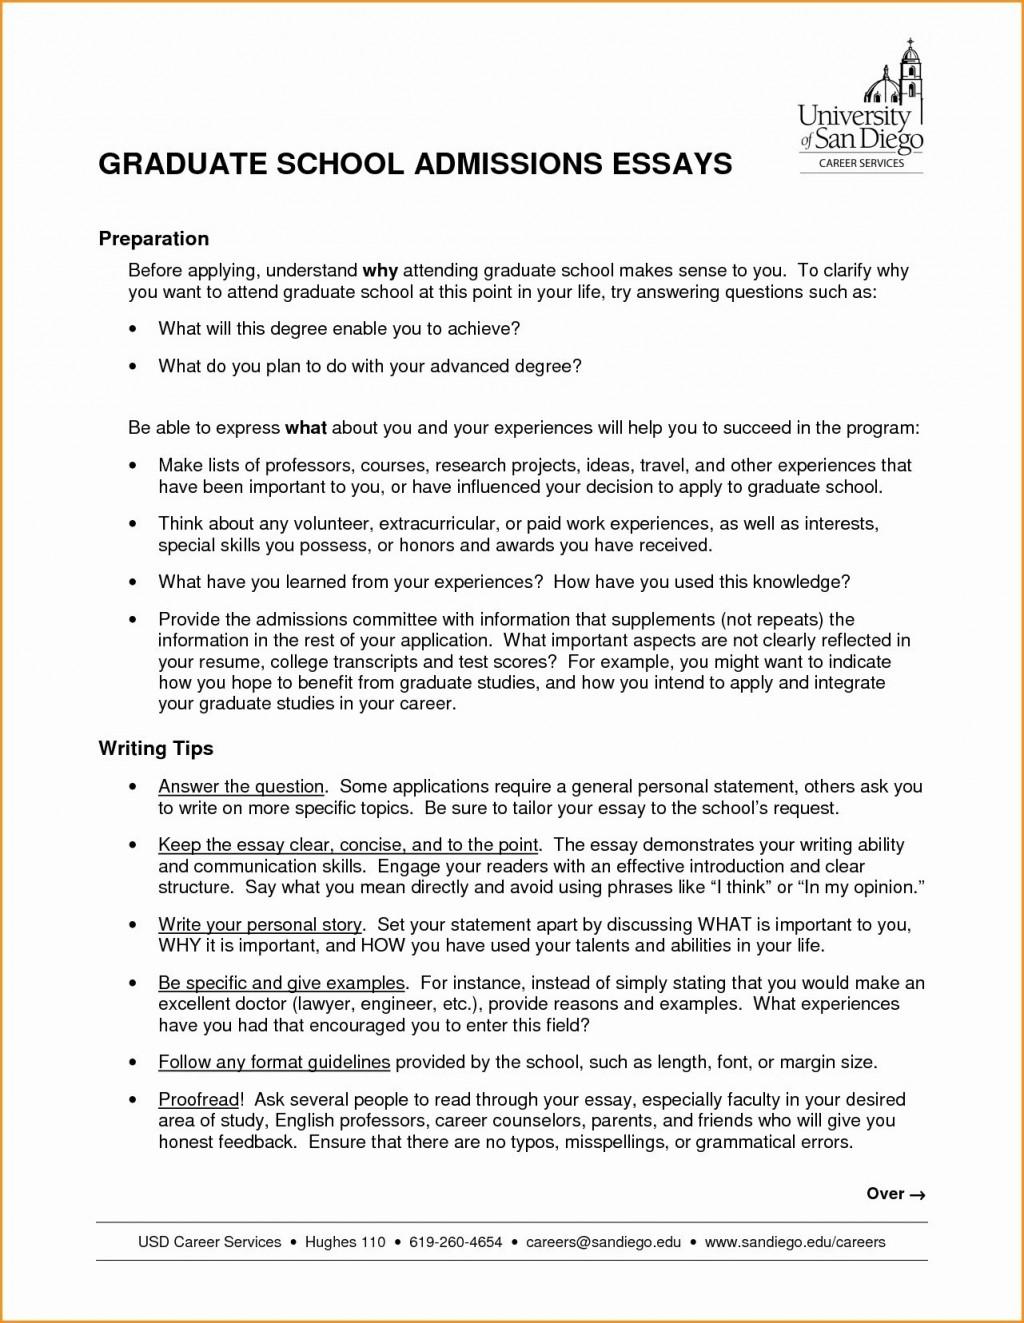 020 Essay Example Standard Format Writing Personal Latest Student Valid Elegant Recent Graduate Cover Letter Impressive Apa Essay/report For Ielts Large